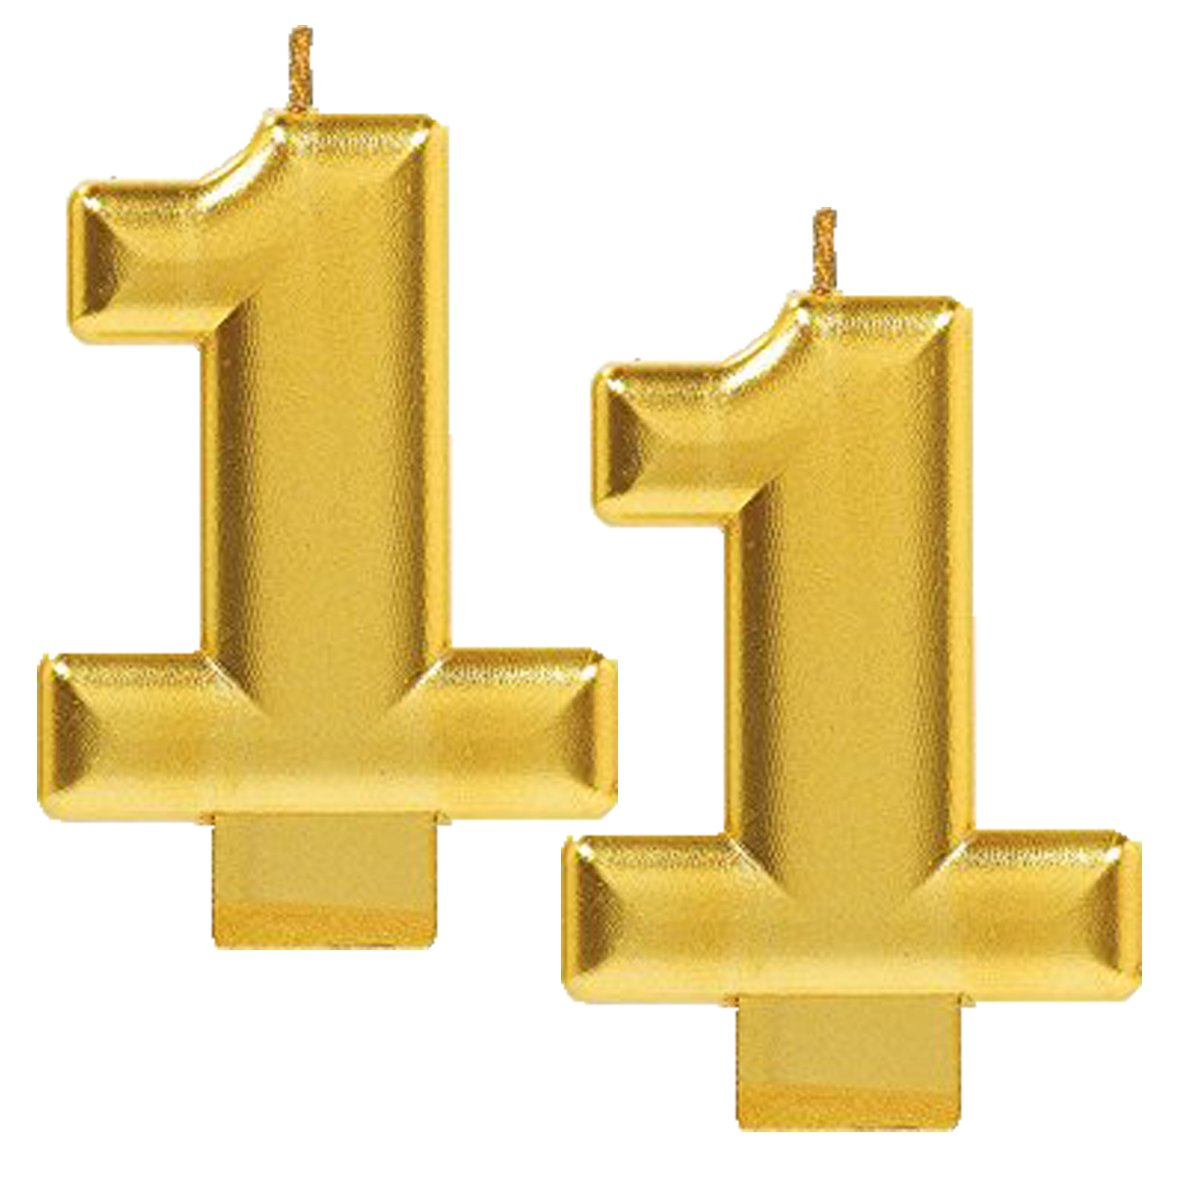 Metallic Gold Amscan 2 Birthday Glitter 3.25 Numeral Candle Childrens Party Favor Sets